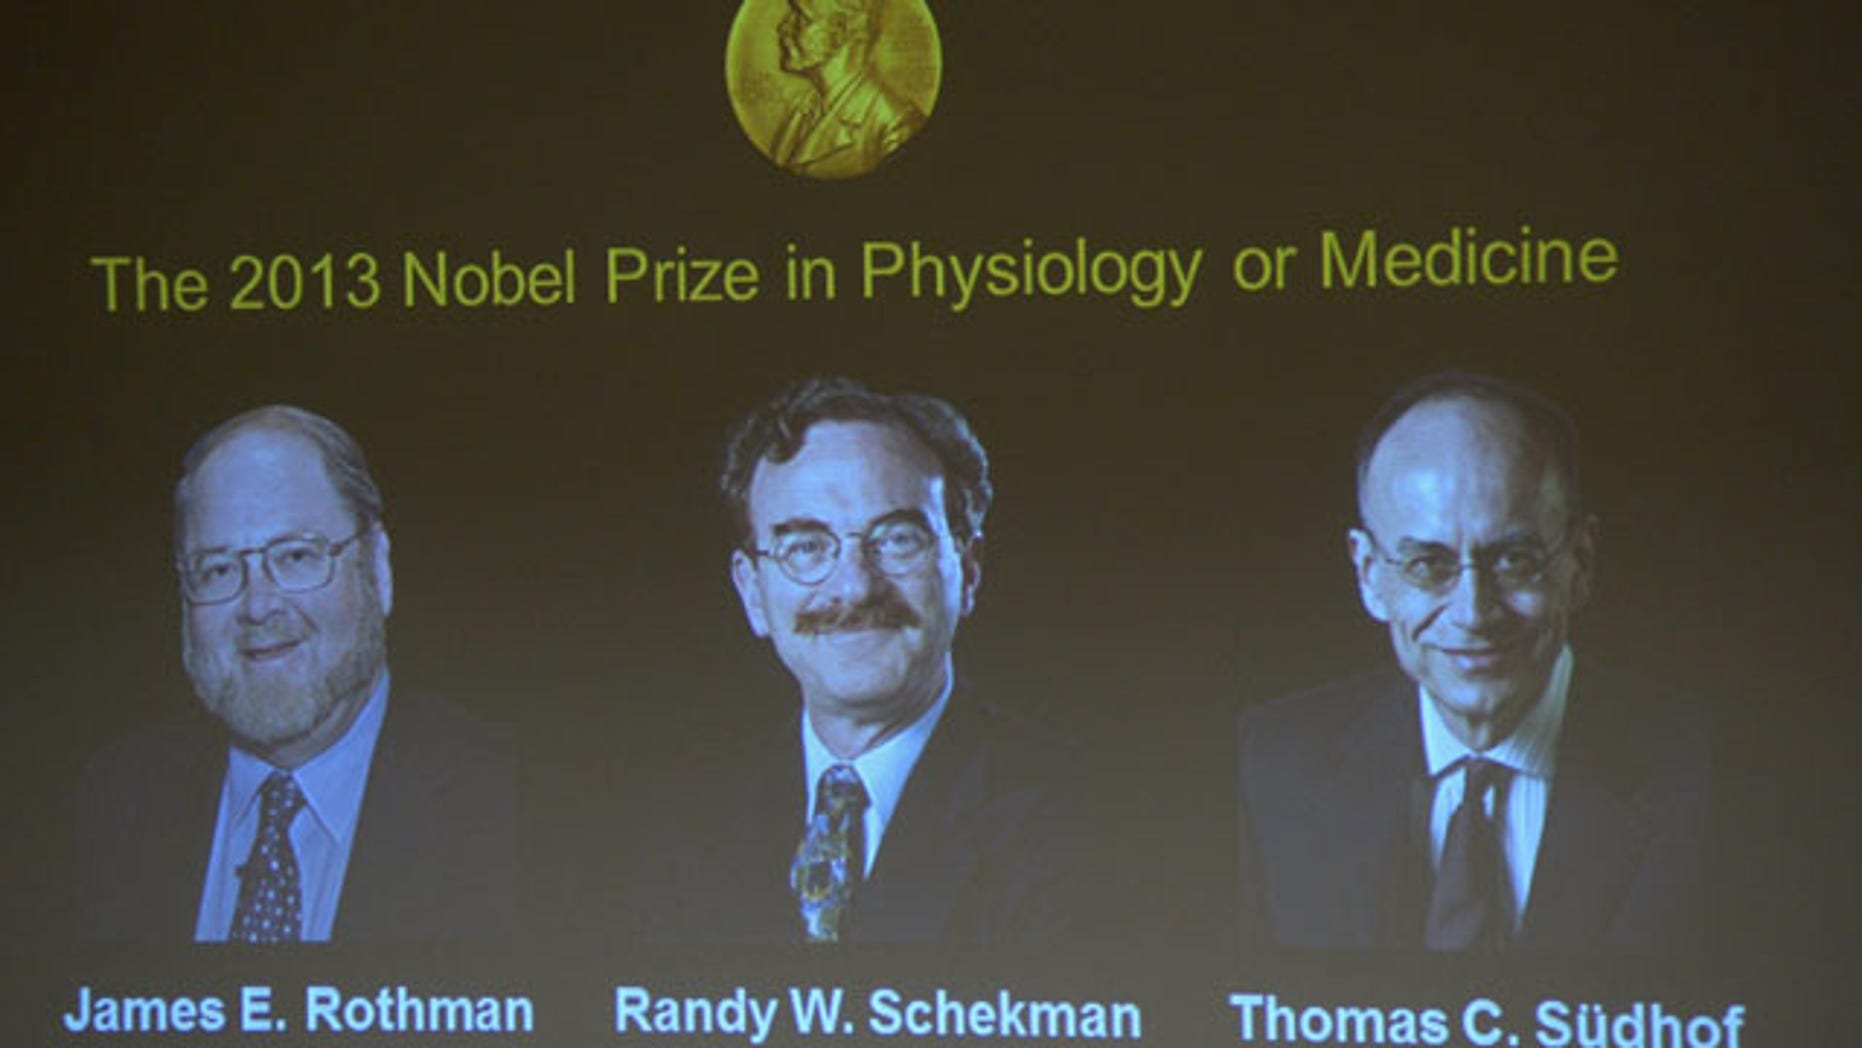 October 7, 2013: Images of James Rothman and Randy Schekman, of the US, and German-born researcher Thomas Suedhof are projected on a screen, in Stockholm, Sweden, Monday after they were announced as the winners of the 2013 Nobel Prize in medicine. (AP Photo)